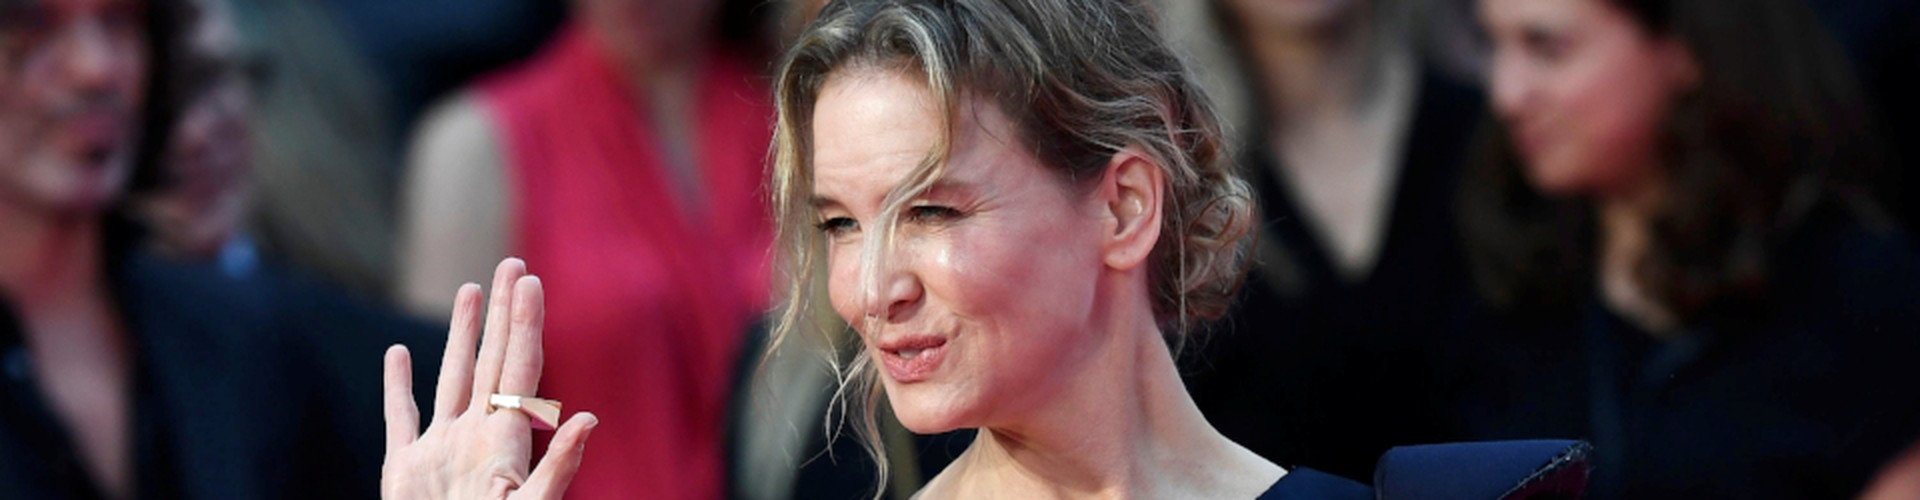 "Renee Zellweger arrives for the world premiere of ""Bridget Jones's Baby"" at Leicester Square in London"